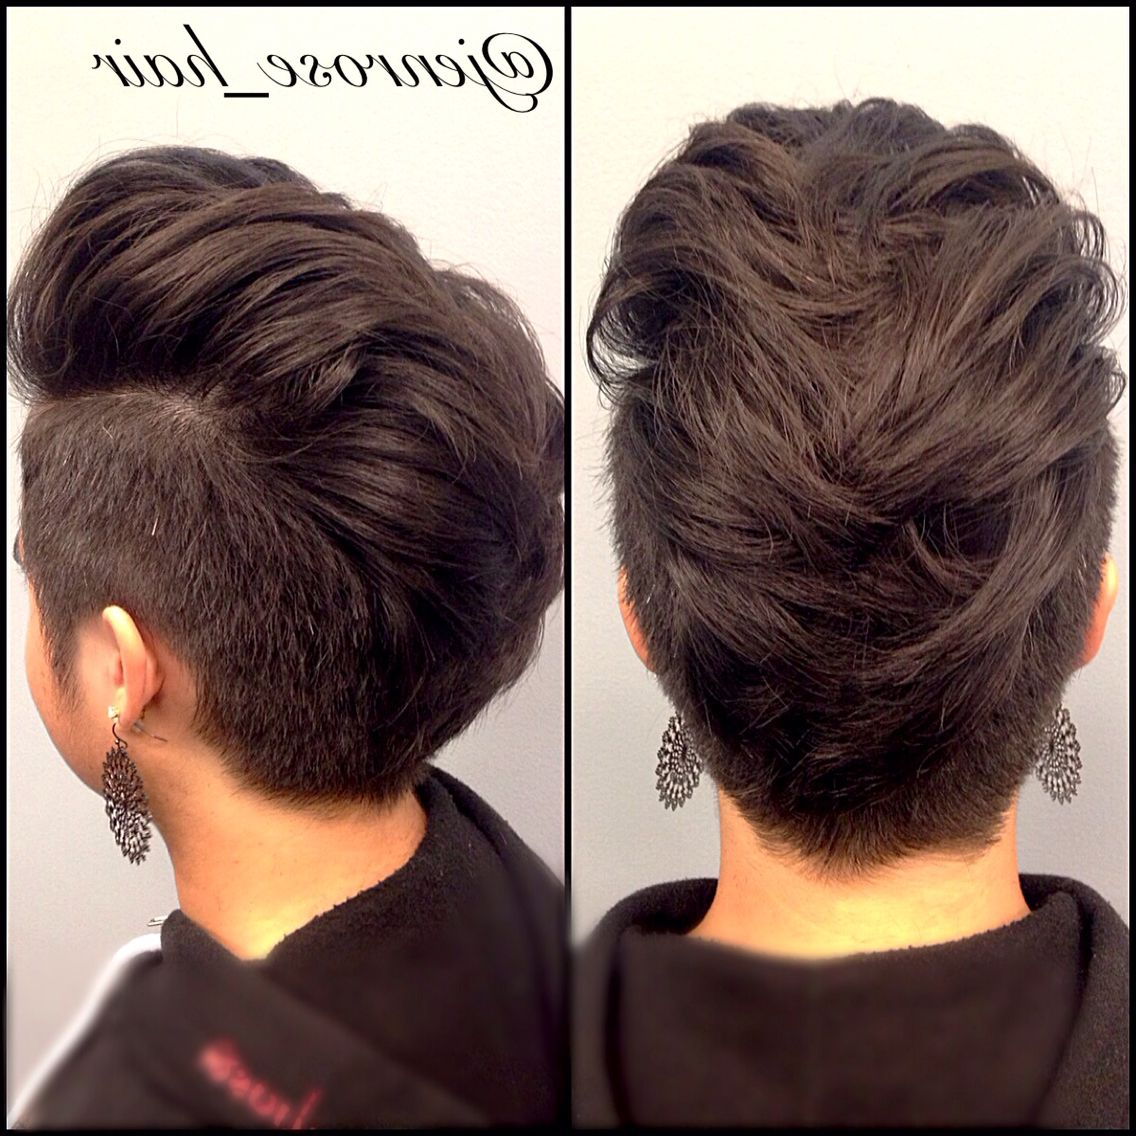 Women's Faux Hawk With Shaved Sides. Shorts Women's Hair Cut (View 20 of 20)